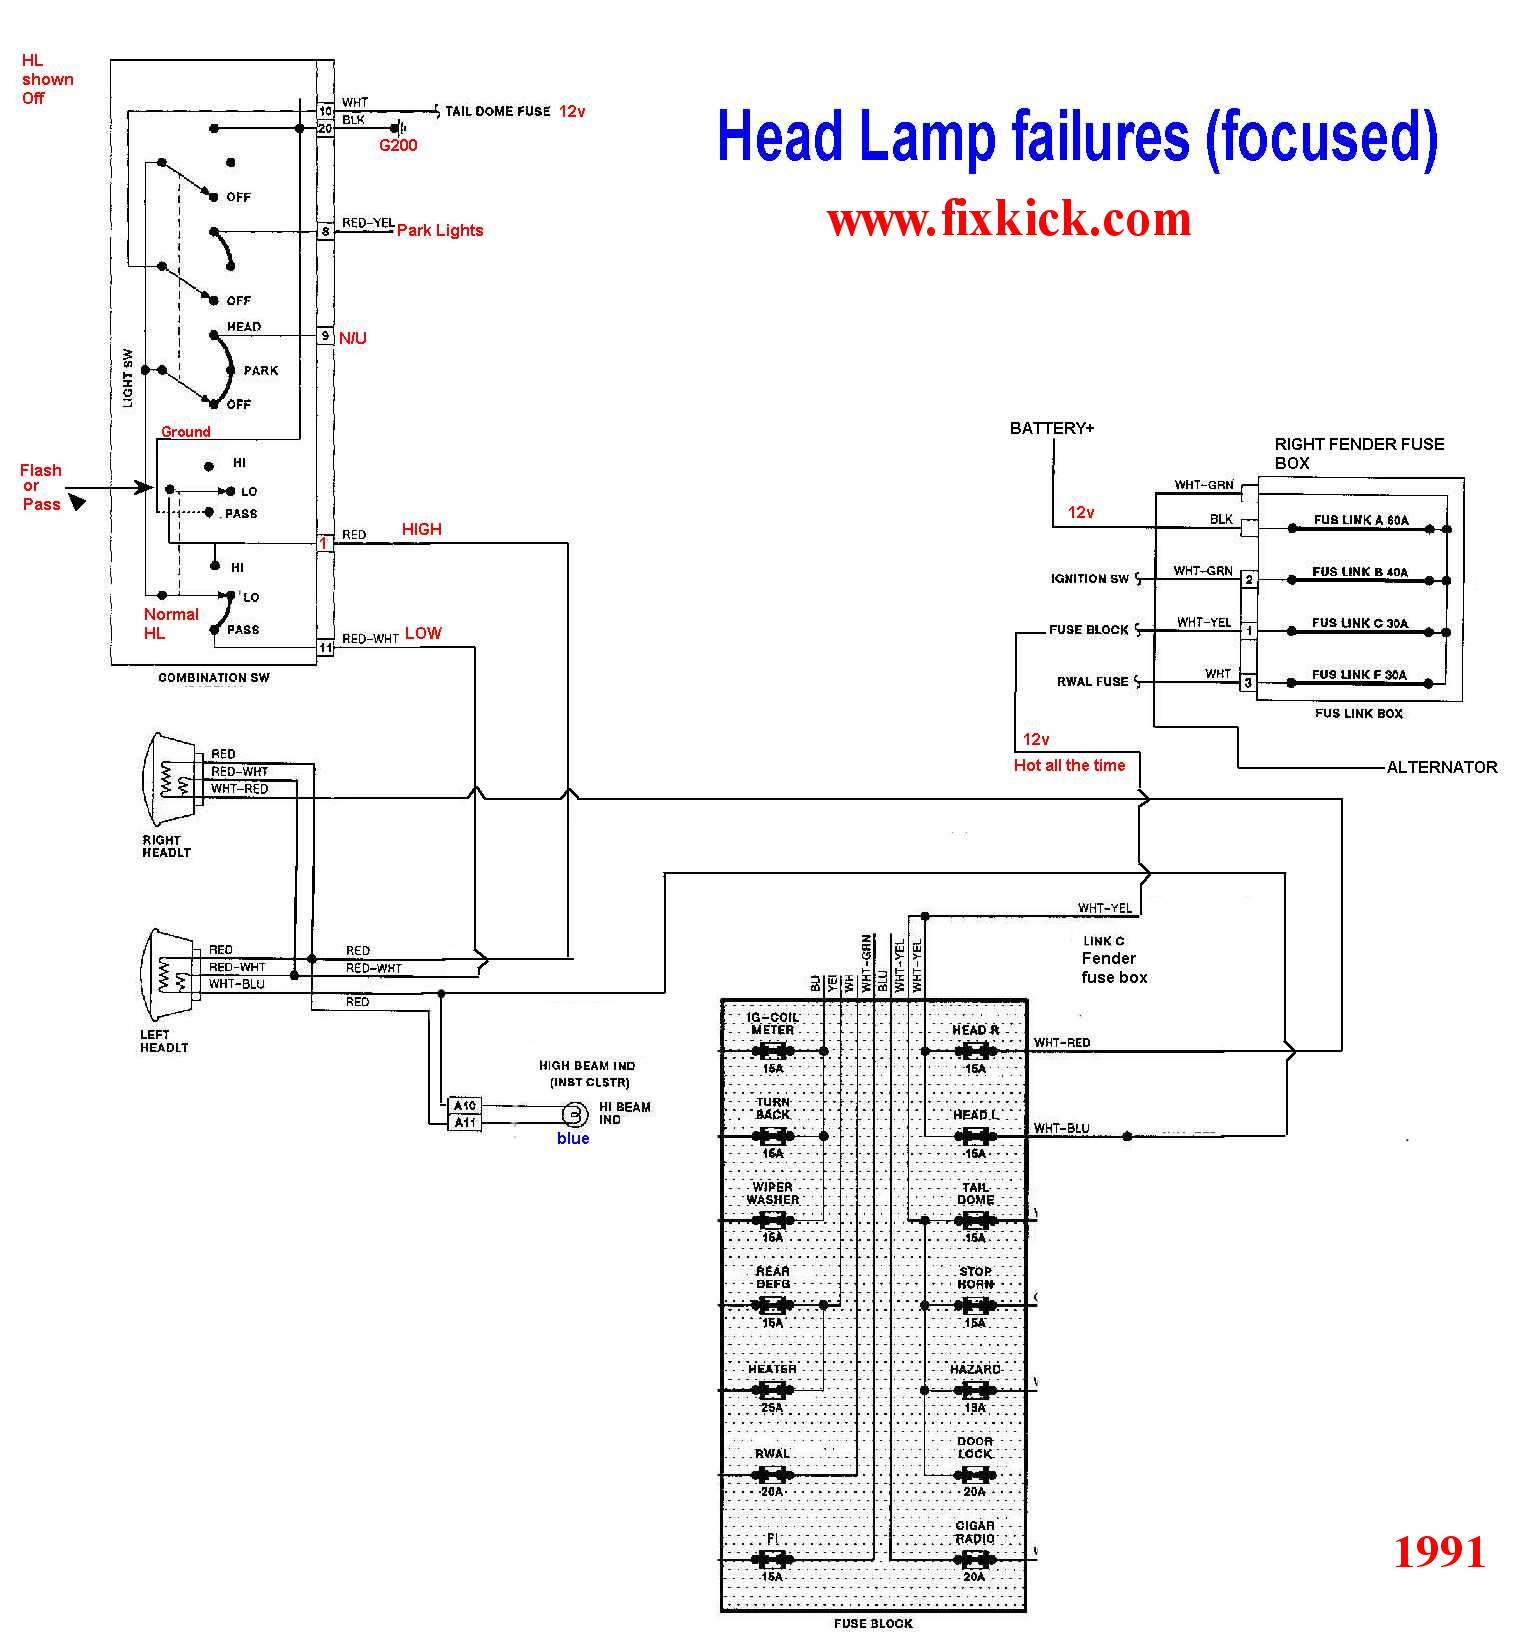 1992 Geo Tracker Wiring Diagram Library Repair Guides Diagrams 4 Of 5 The 1991 Unified Head Light Schematic I Made